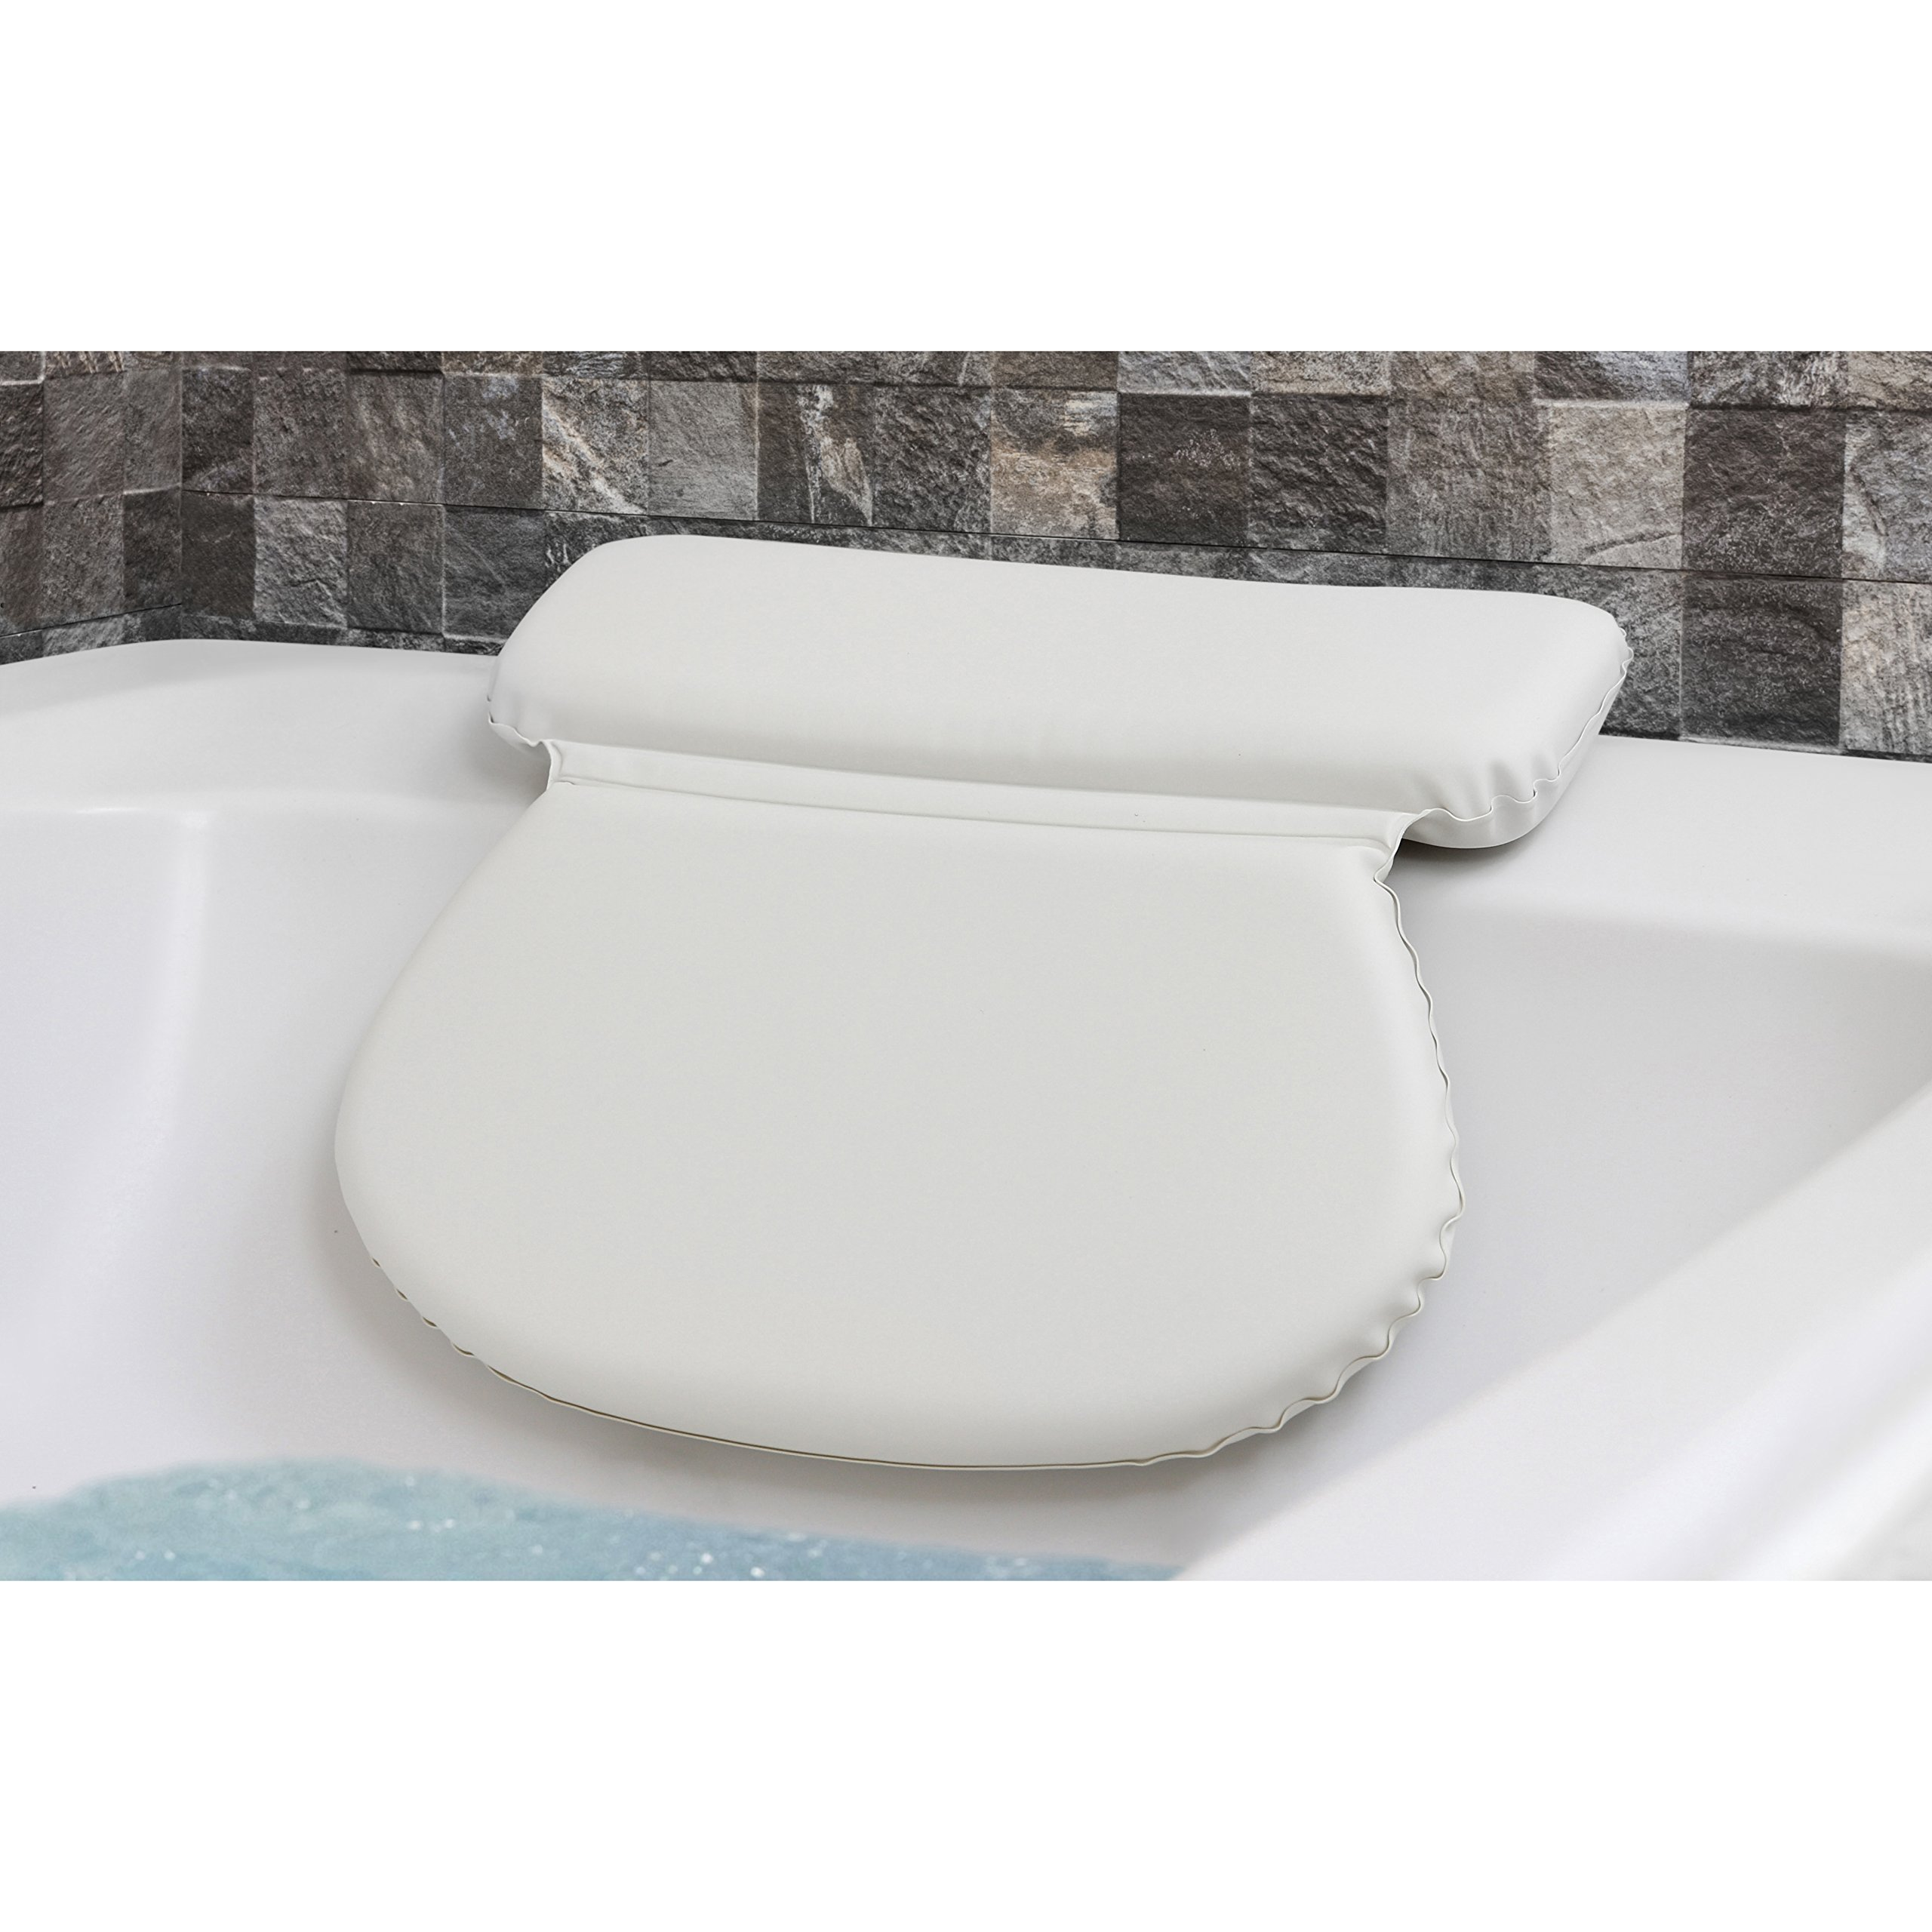 Amazon.com: Conair Dual Jet Bath Spa: Health & Personal Care